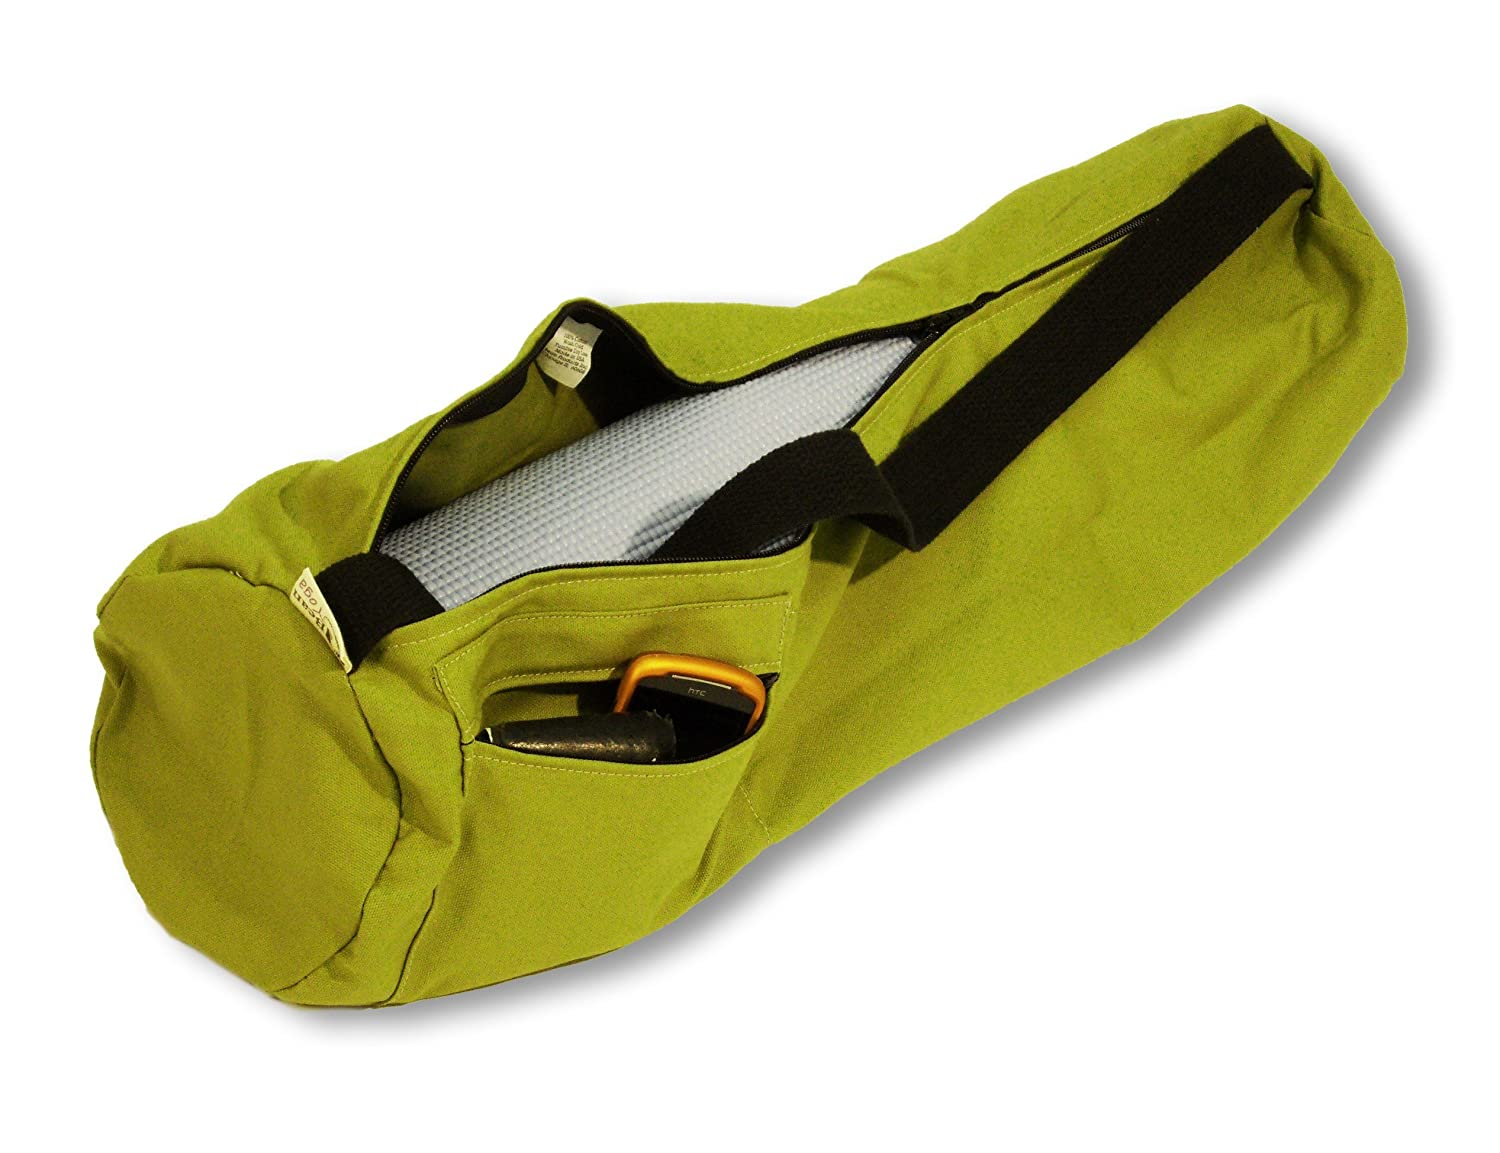 Olive Extra Large  8 x 32 Deluxe Yoga Mat Bag Extra Large Easy Open Zipper Cotton Made USA By Bean Products